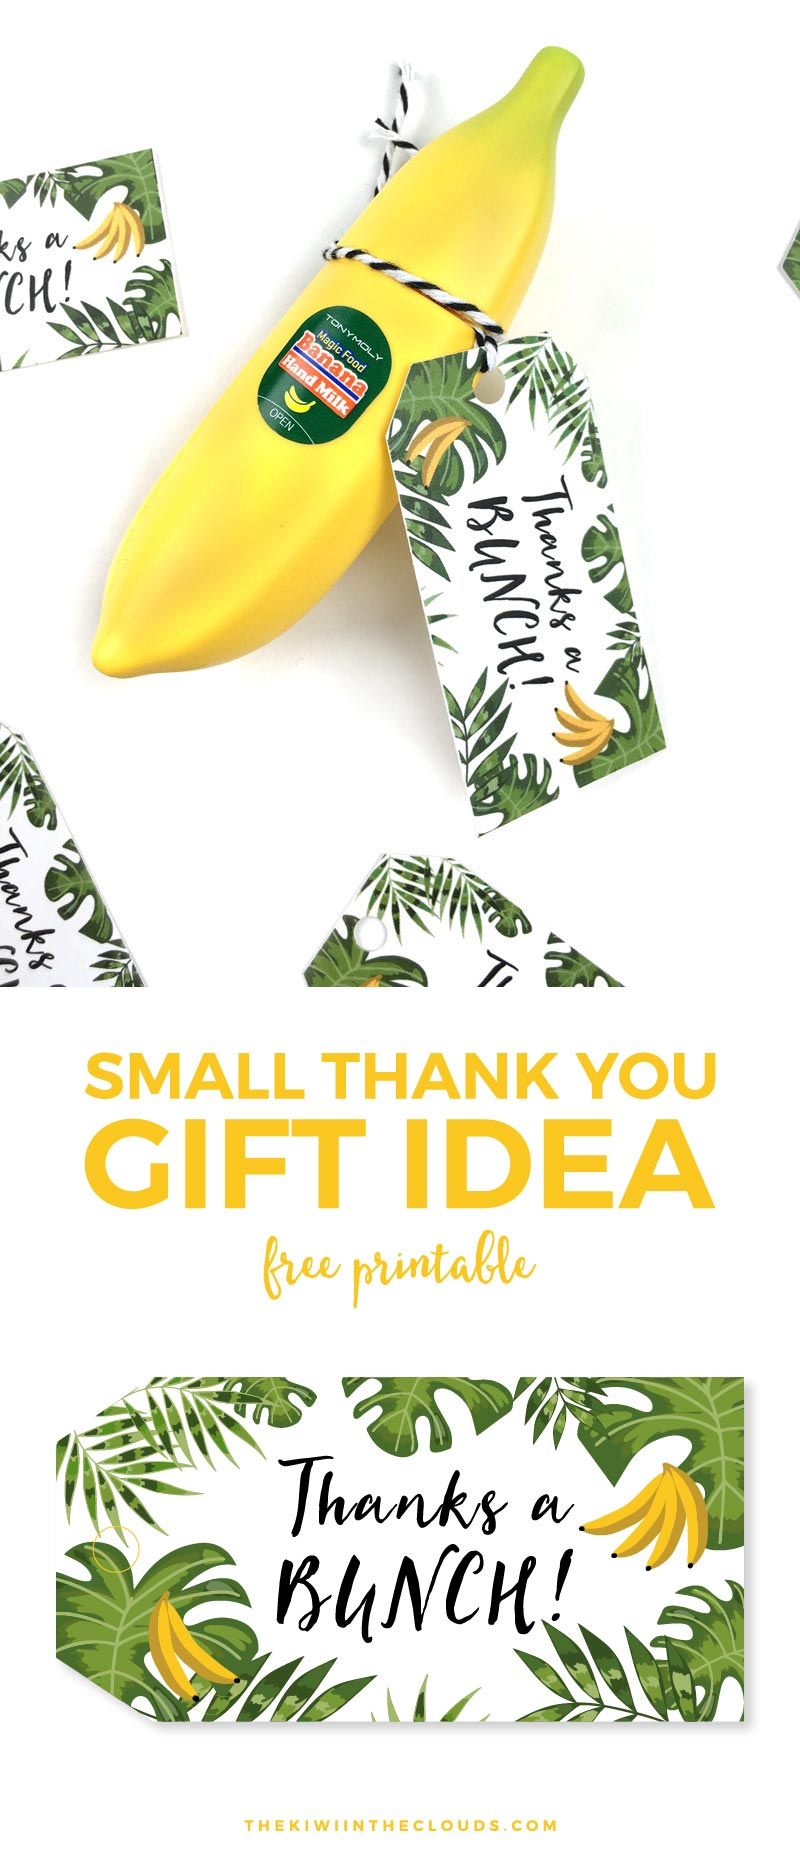 Small Thank You Gift | This small thank you gift idea is perfect for coworkers, friends, teachers or whoever you just want to say thanks to in a cute and quirky way! Click through to download your FREE printable thank you tag.